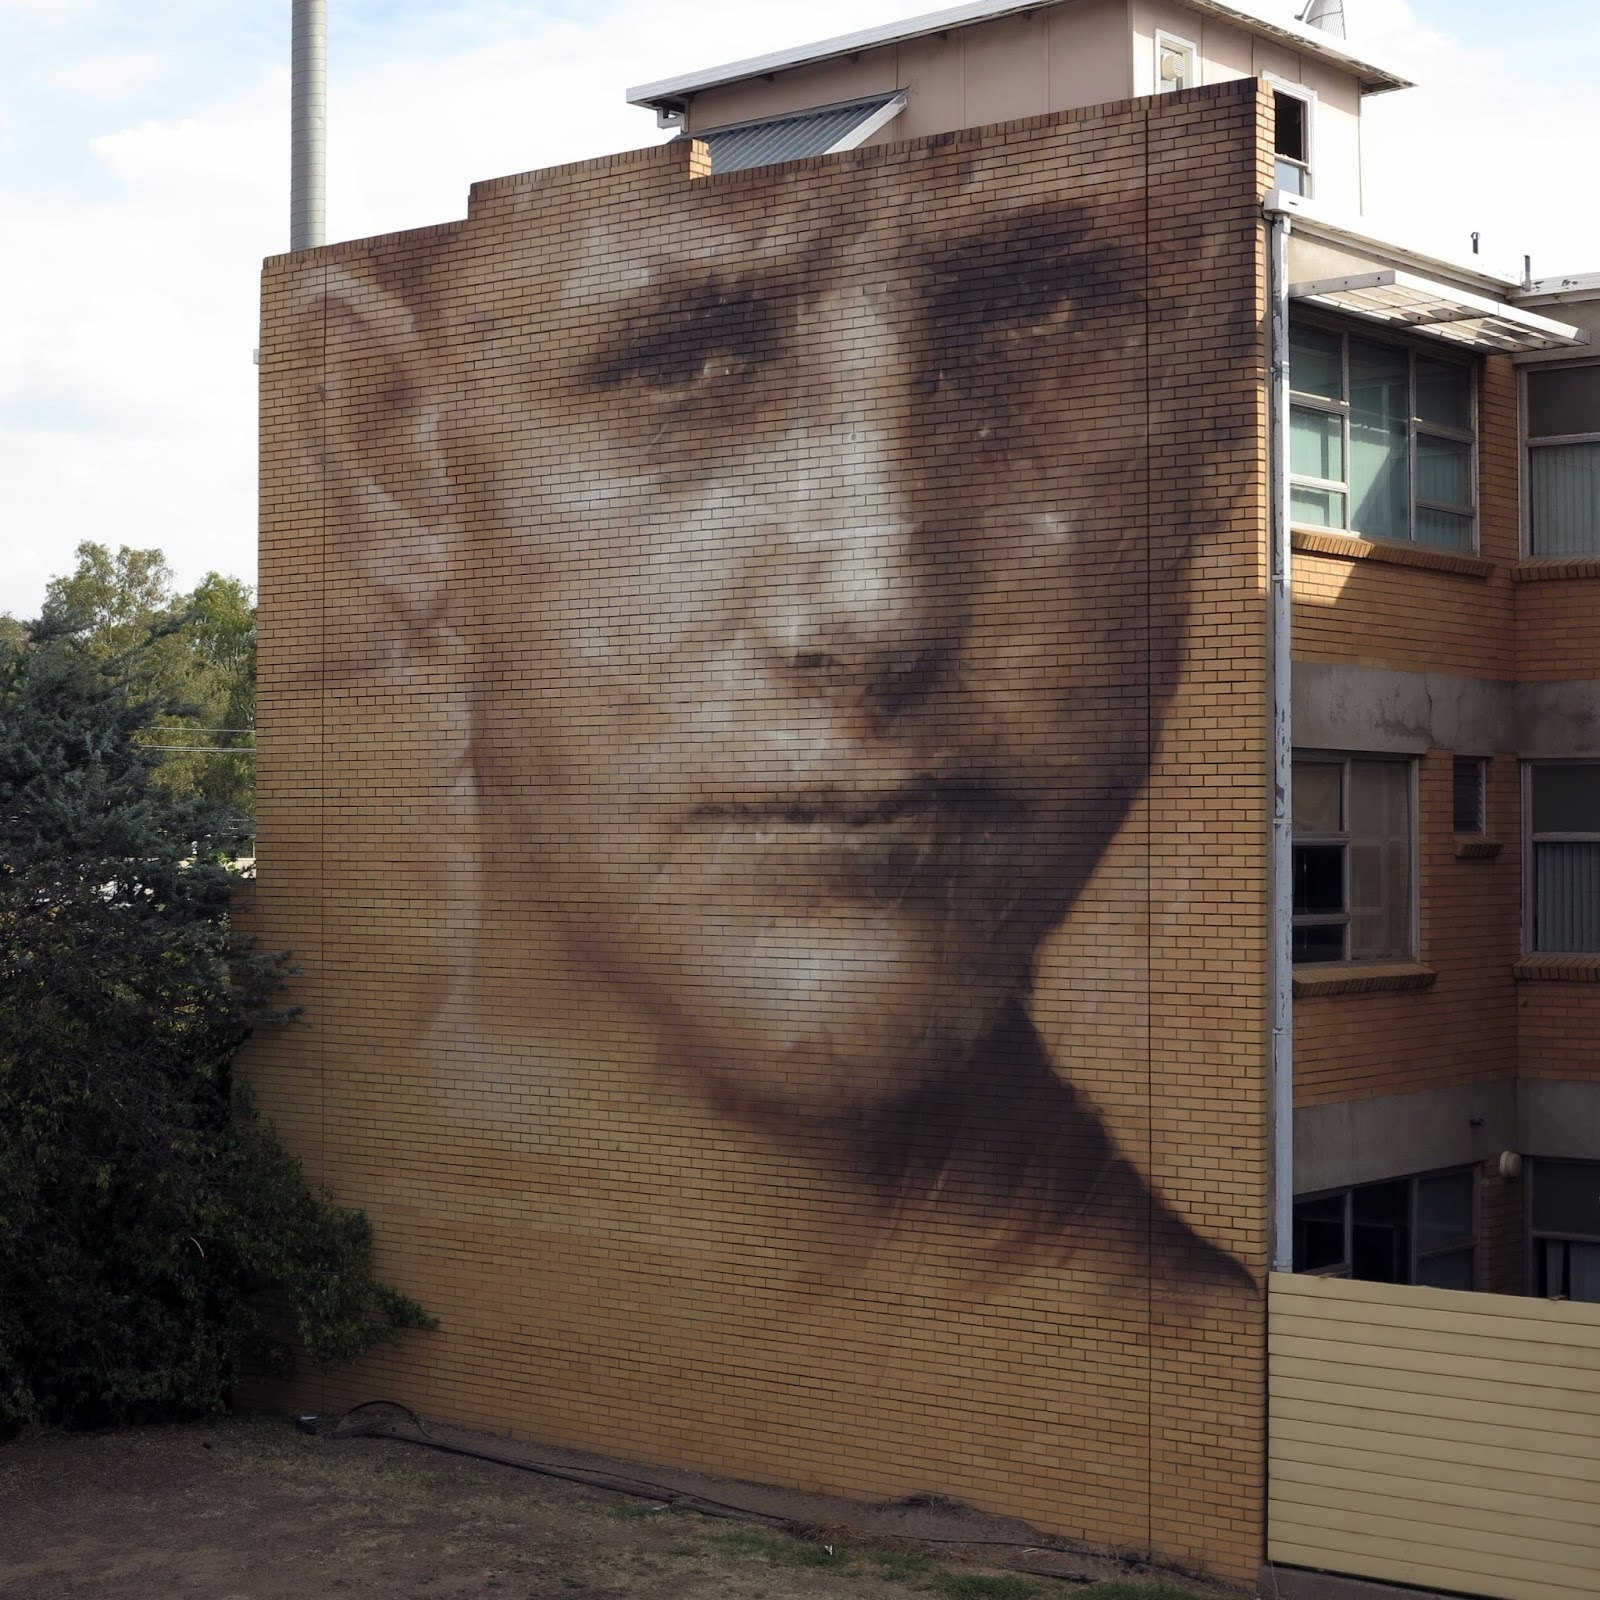 Along with Adnate and Rone, Guido Van Helten was also participating in the Wall To Wall Street Art Festival on the streets of Benalla in Australia. The festival is curated by Judy Roller.